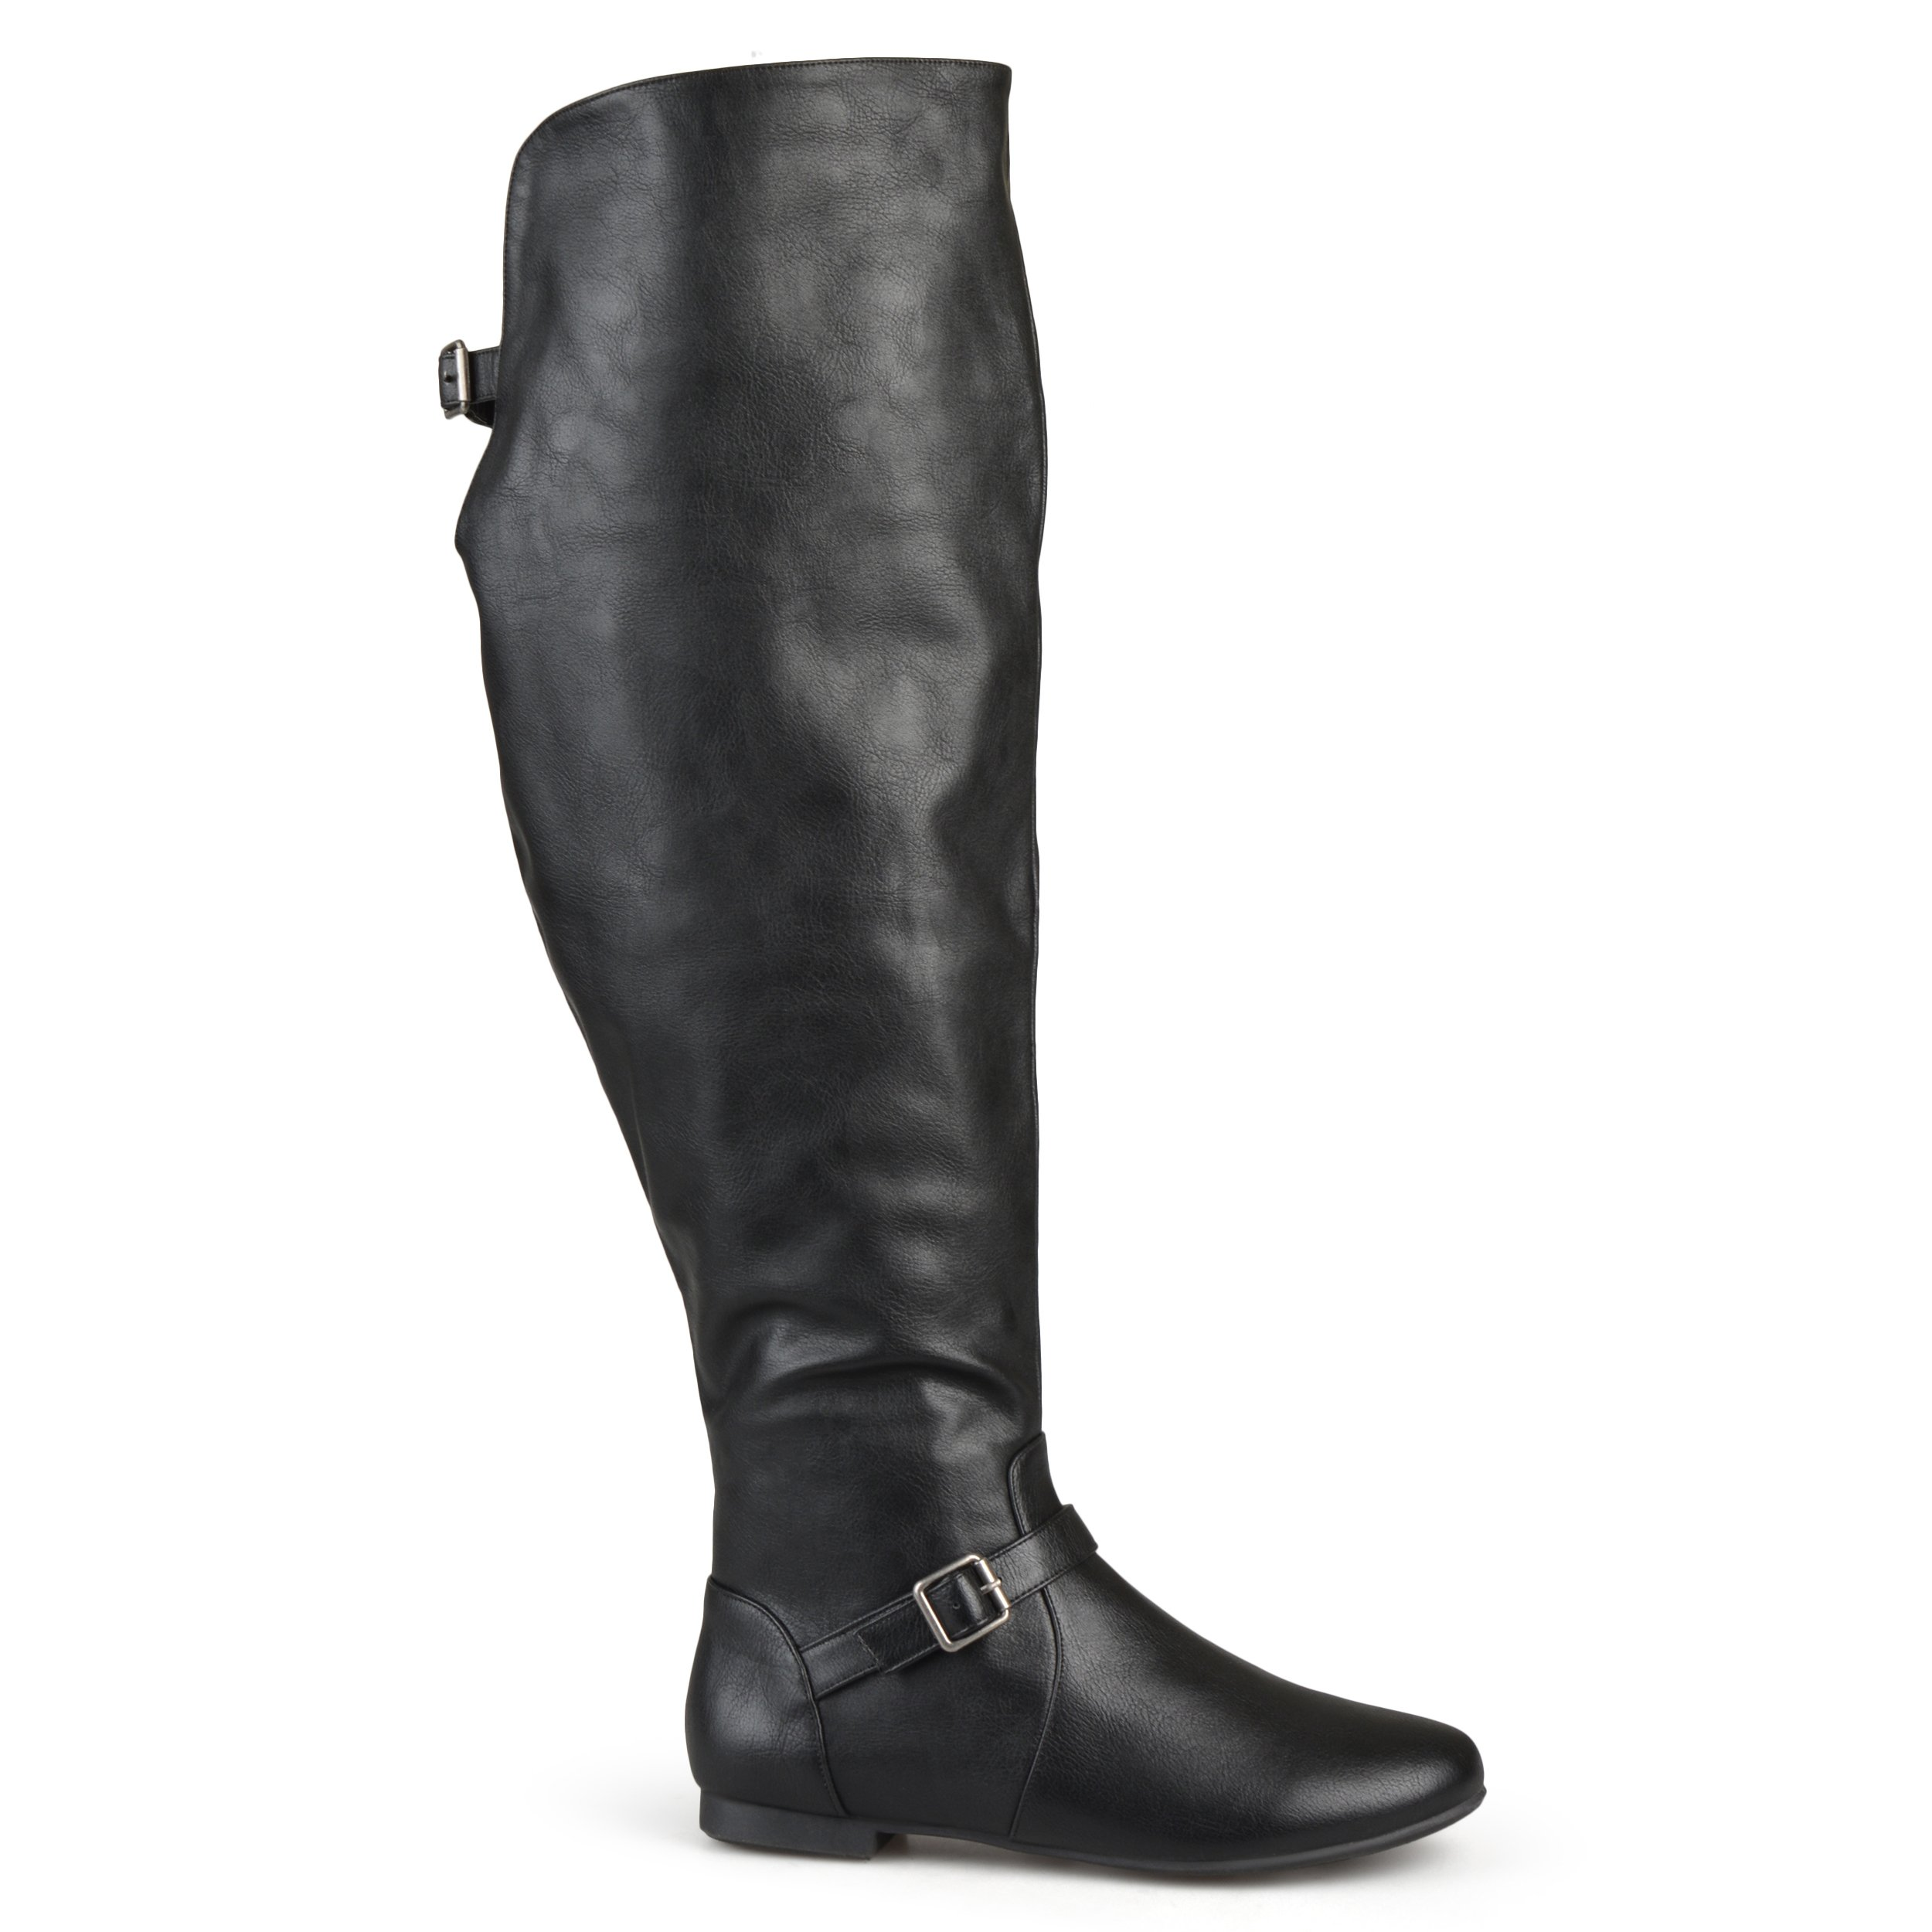 Brinley Co Women's Barn Over The Knee Boot, Black, 10 Wide/Wide Shaft US